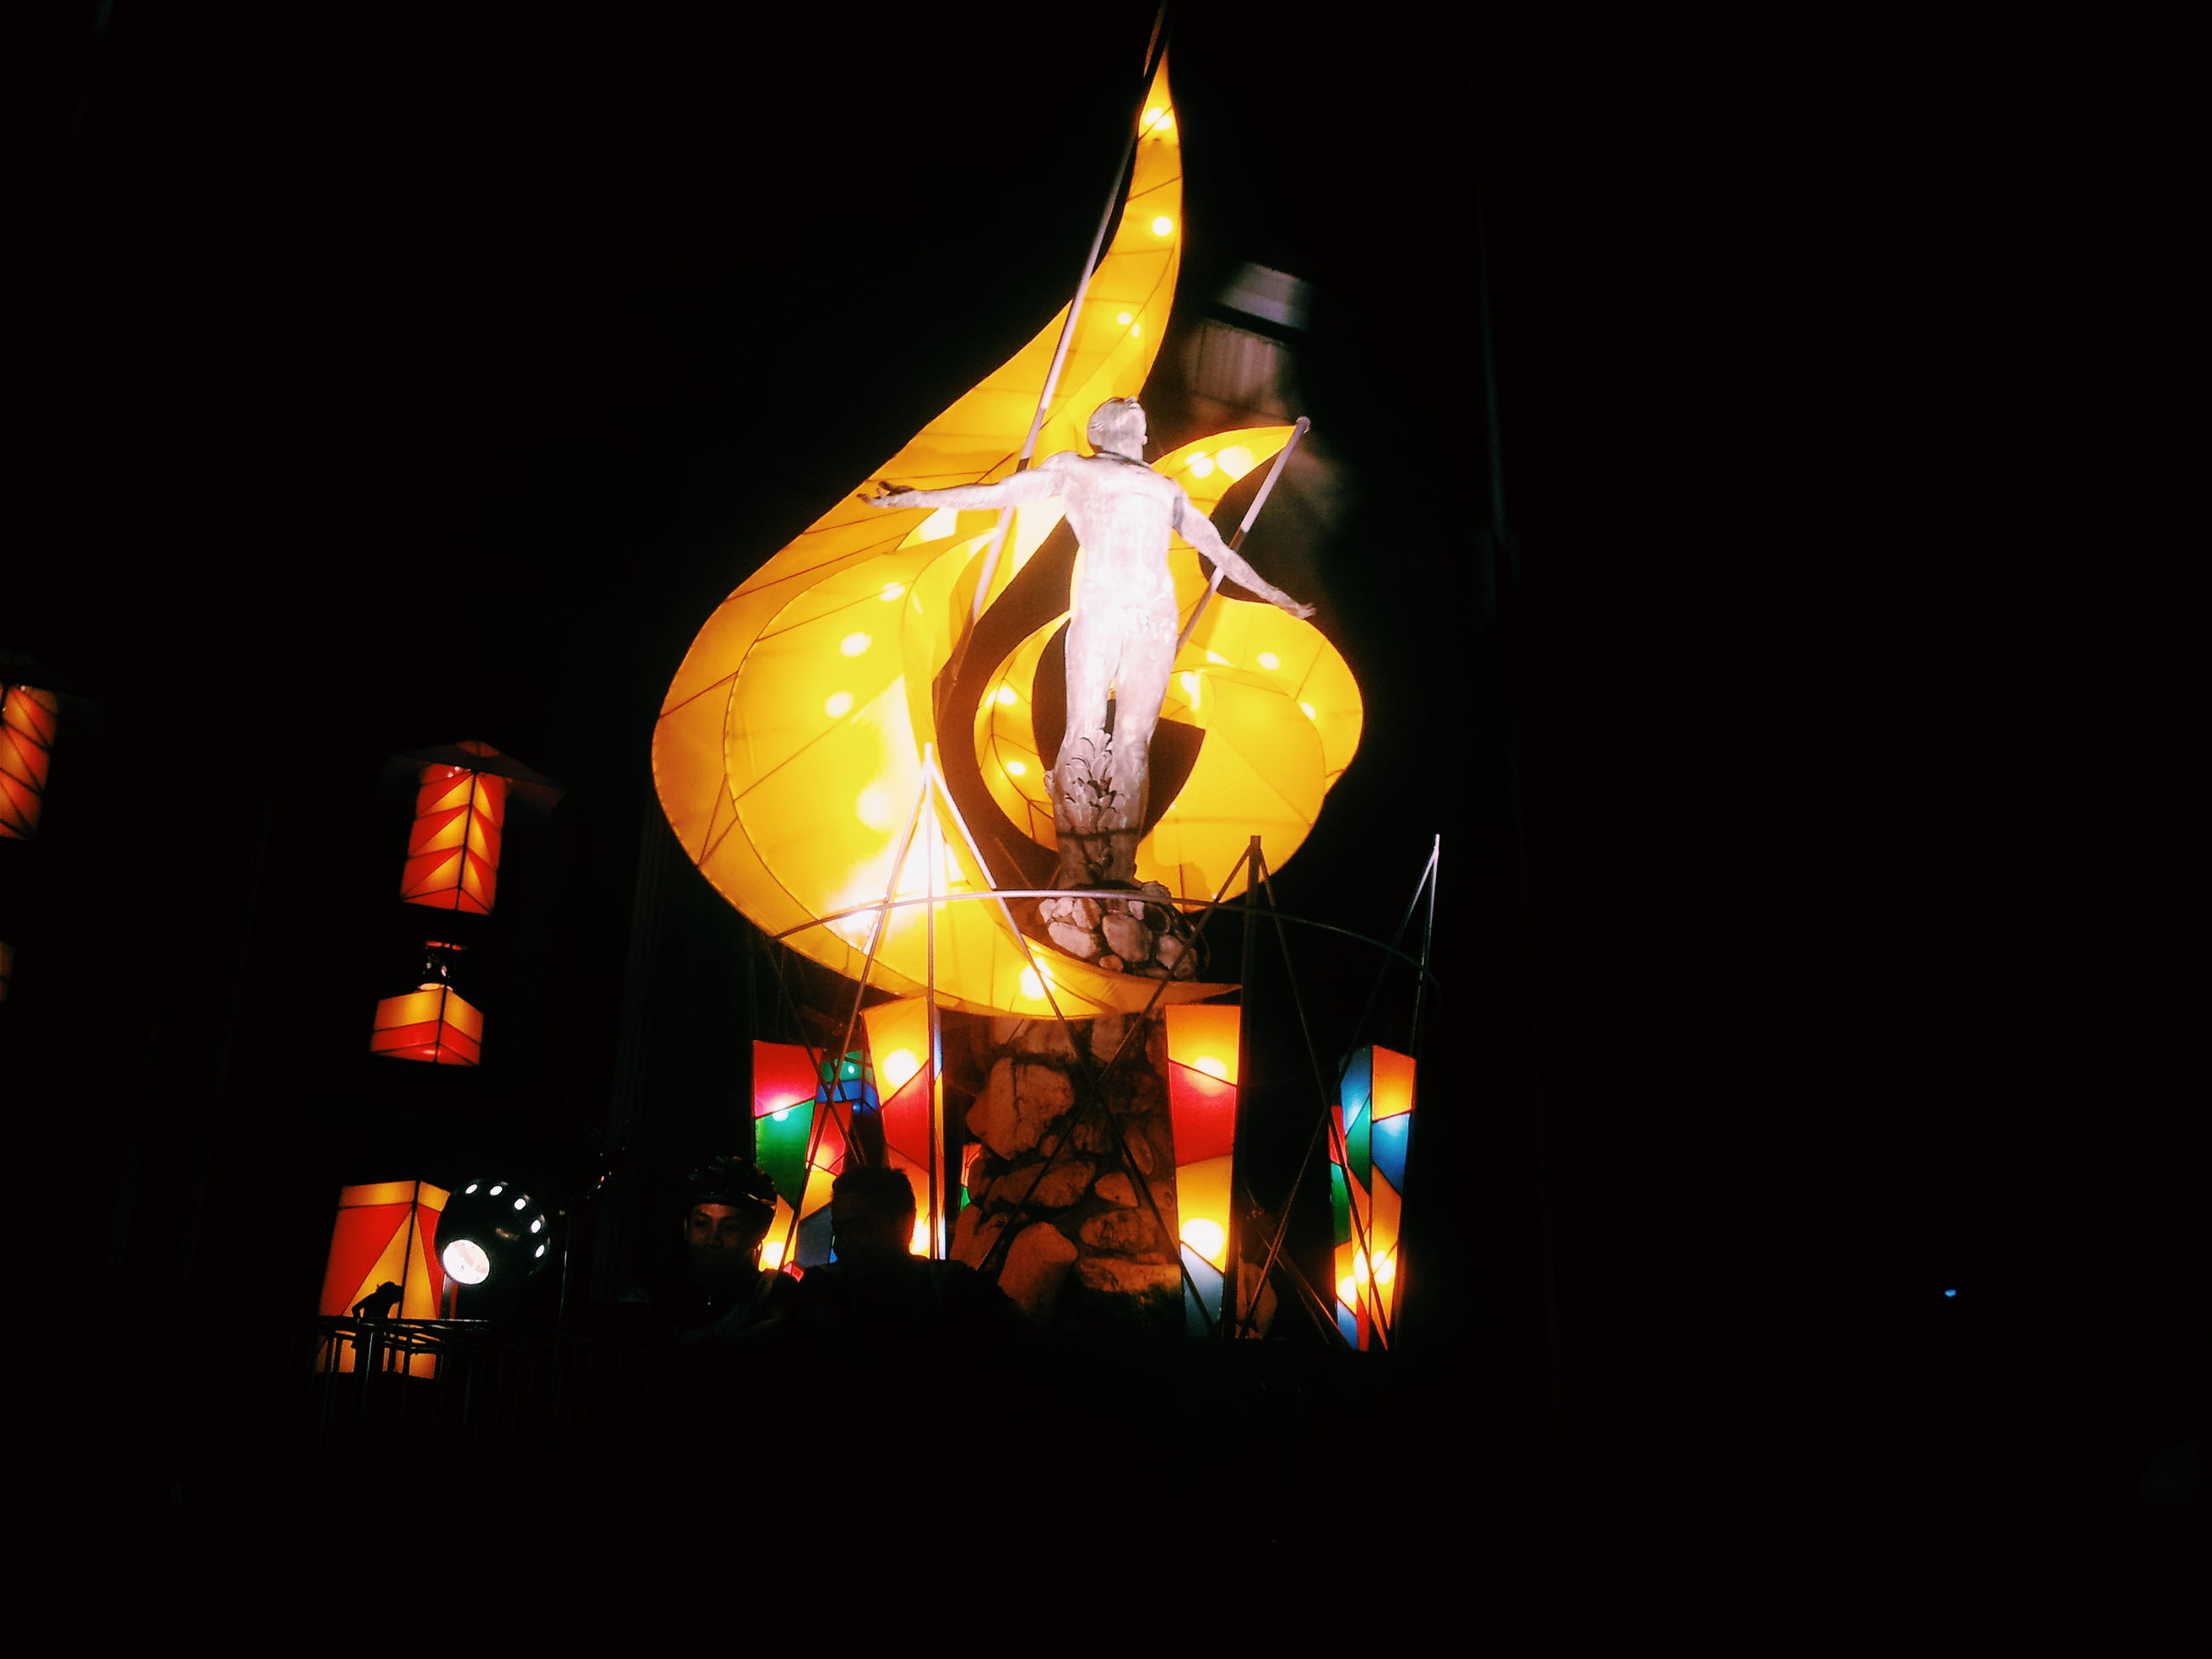 illuminated, night, glowing, dark, religion, celebration, arts culture and entertainment, place of worship, cultures, spirituality, burning, fire - natural phenomenon, tradition, flame, lighting equipment, lantern, human representation, copy space, light - natural phenomenon, low angle view